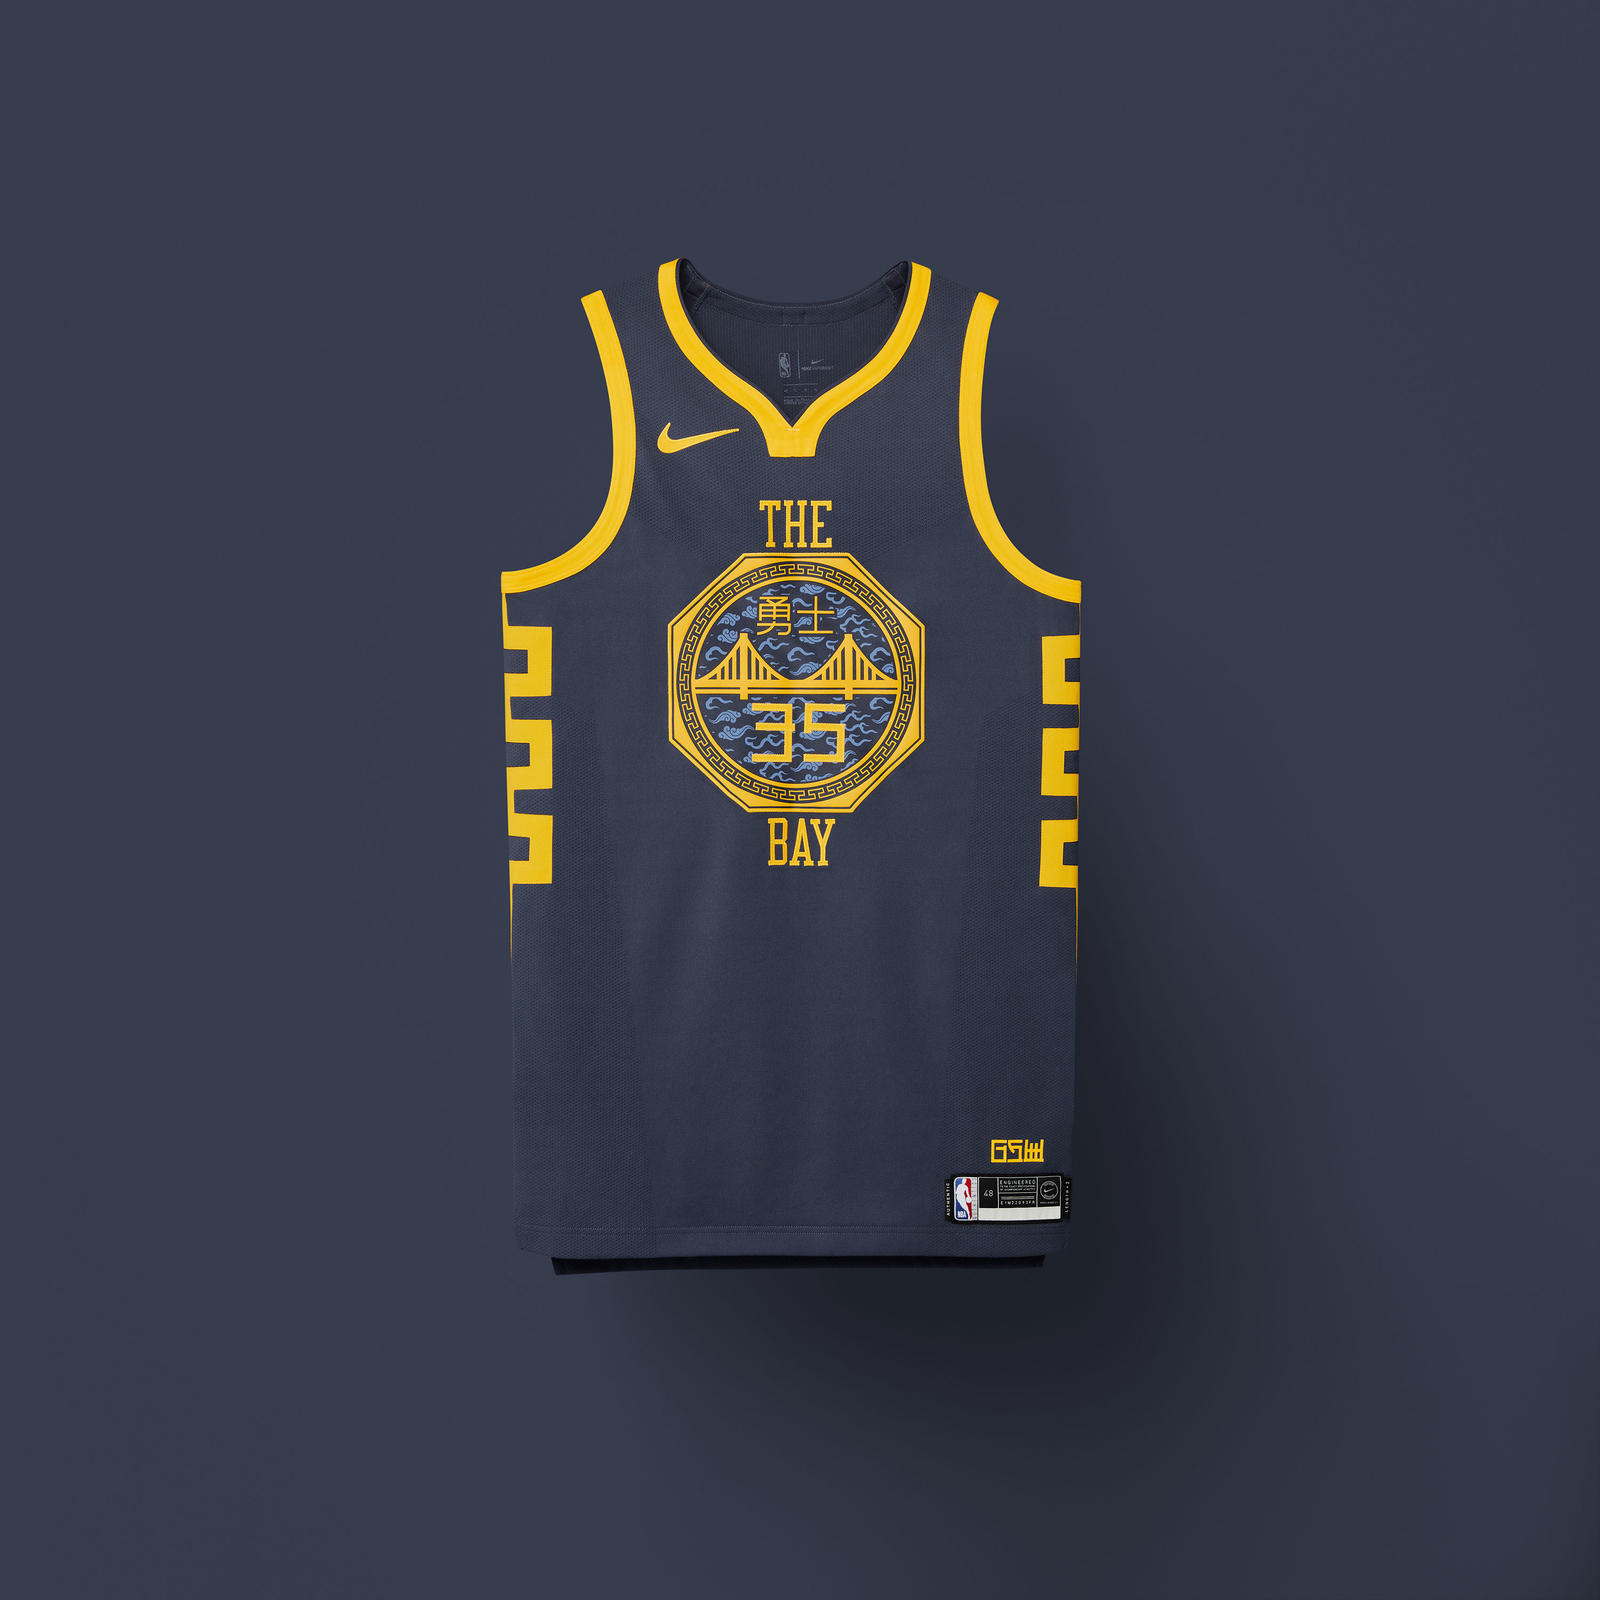 Golden State Warriors New Stadium: NBA City Edition Uniforms 2018-19